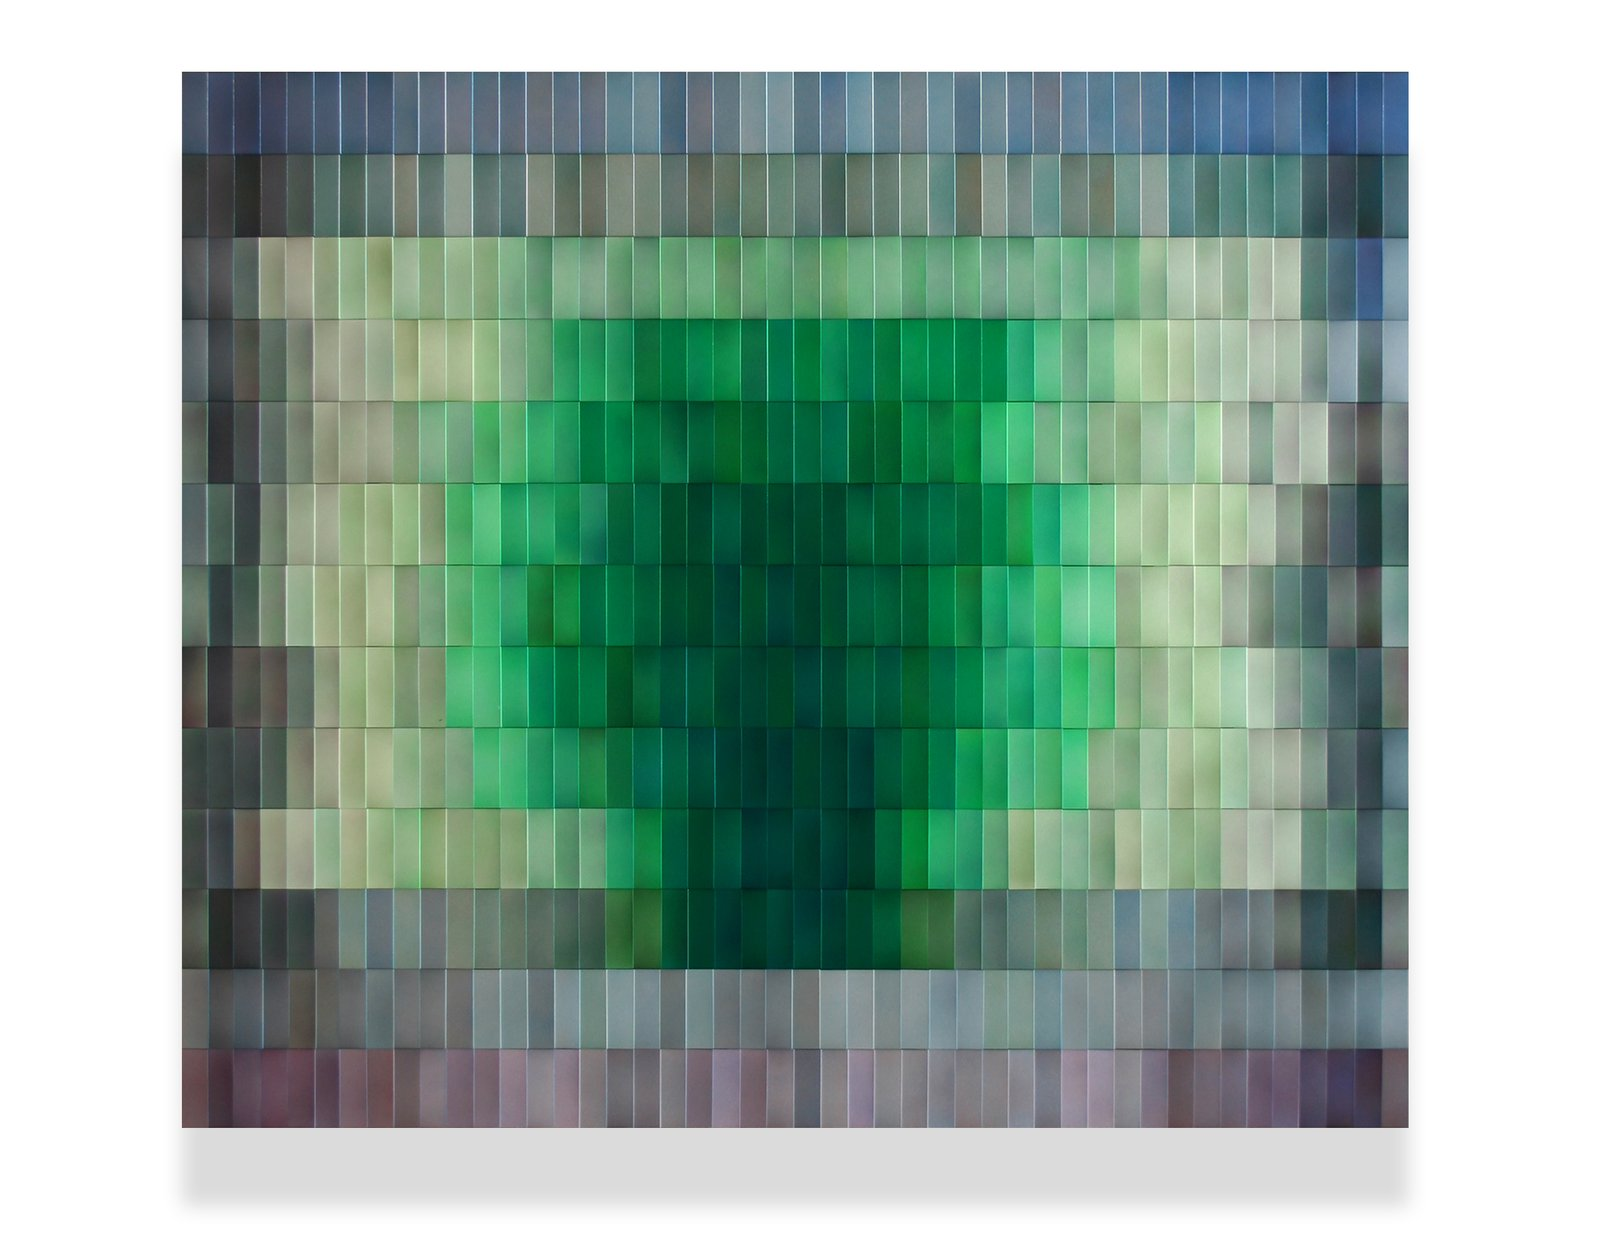 """Emerald Fluorite"", Wall Artwork, for private Residence  39""h x 46""w, 2""d layered, colored metal tiles on wood panel  Cascade Series"